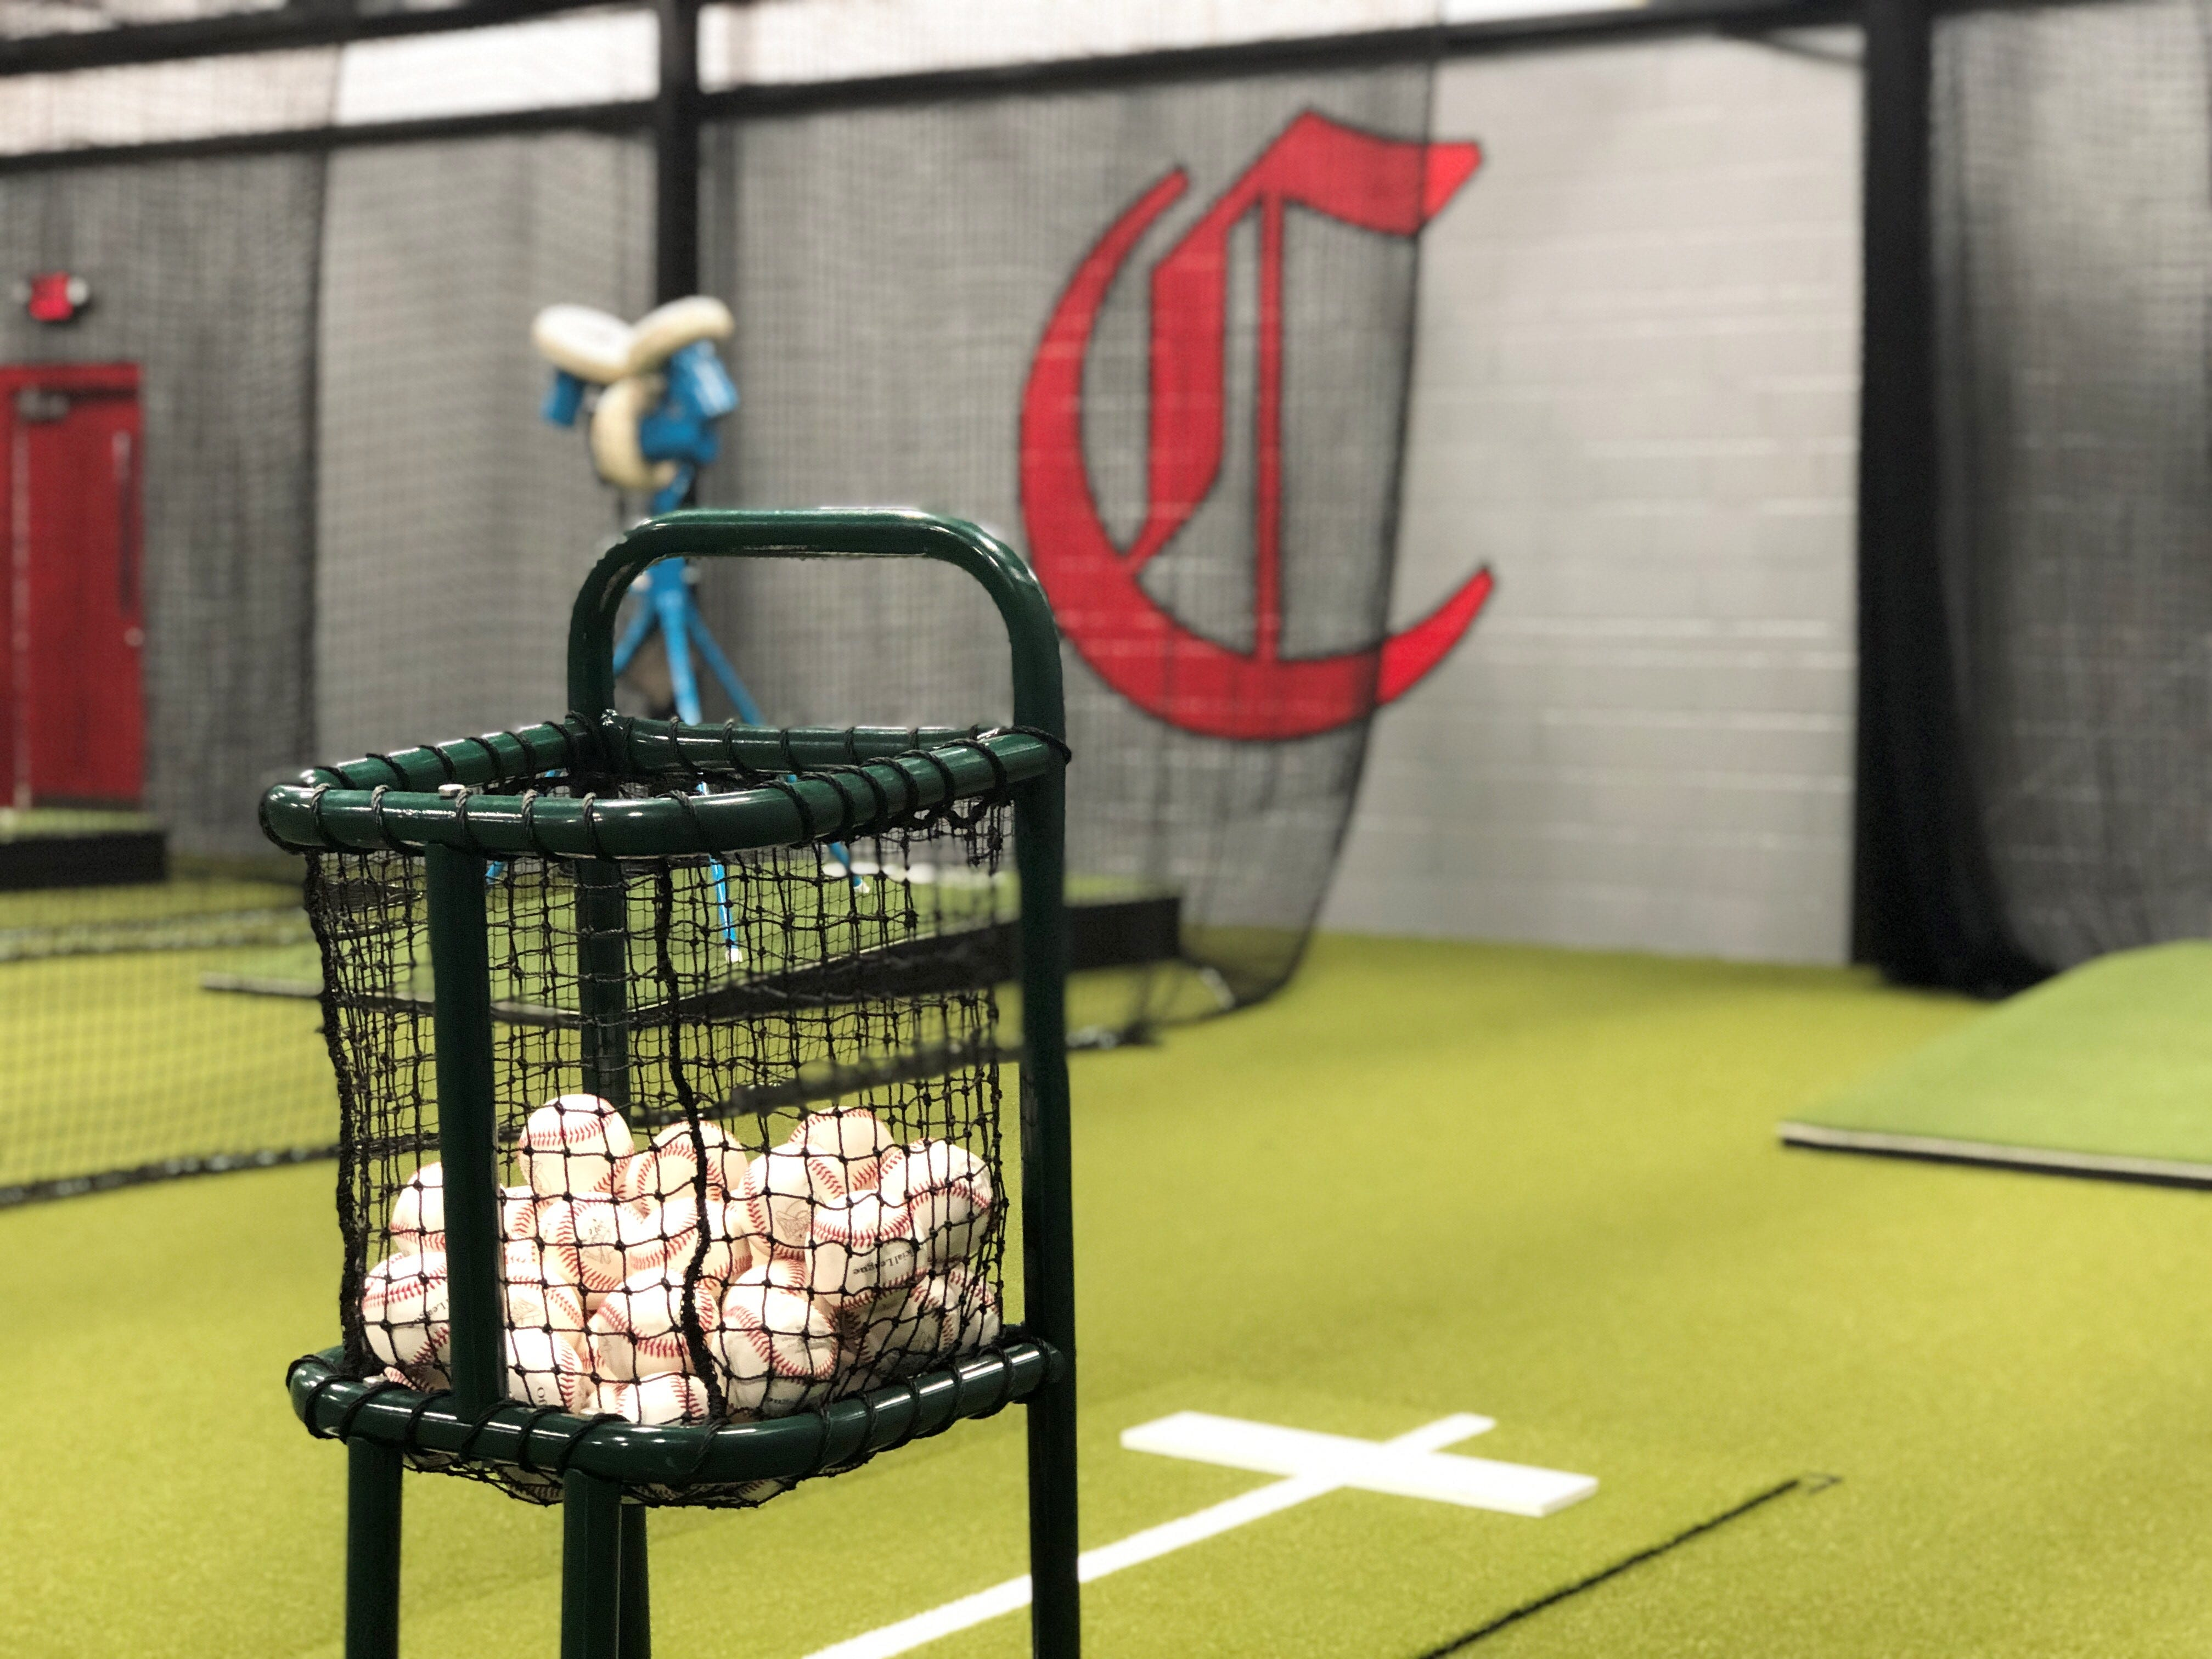 The new indoor hitting facility allows baseball and softball players a location to practice in poor weather conditions.